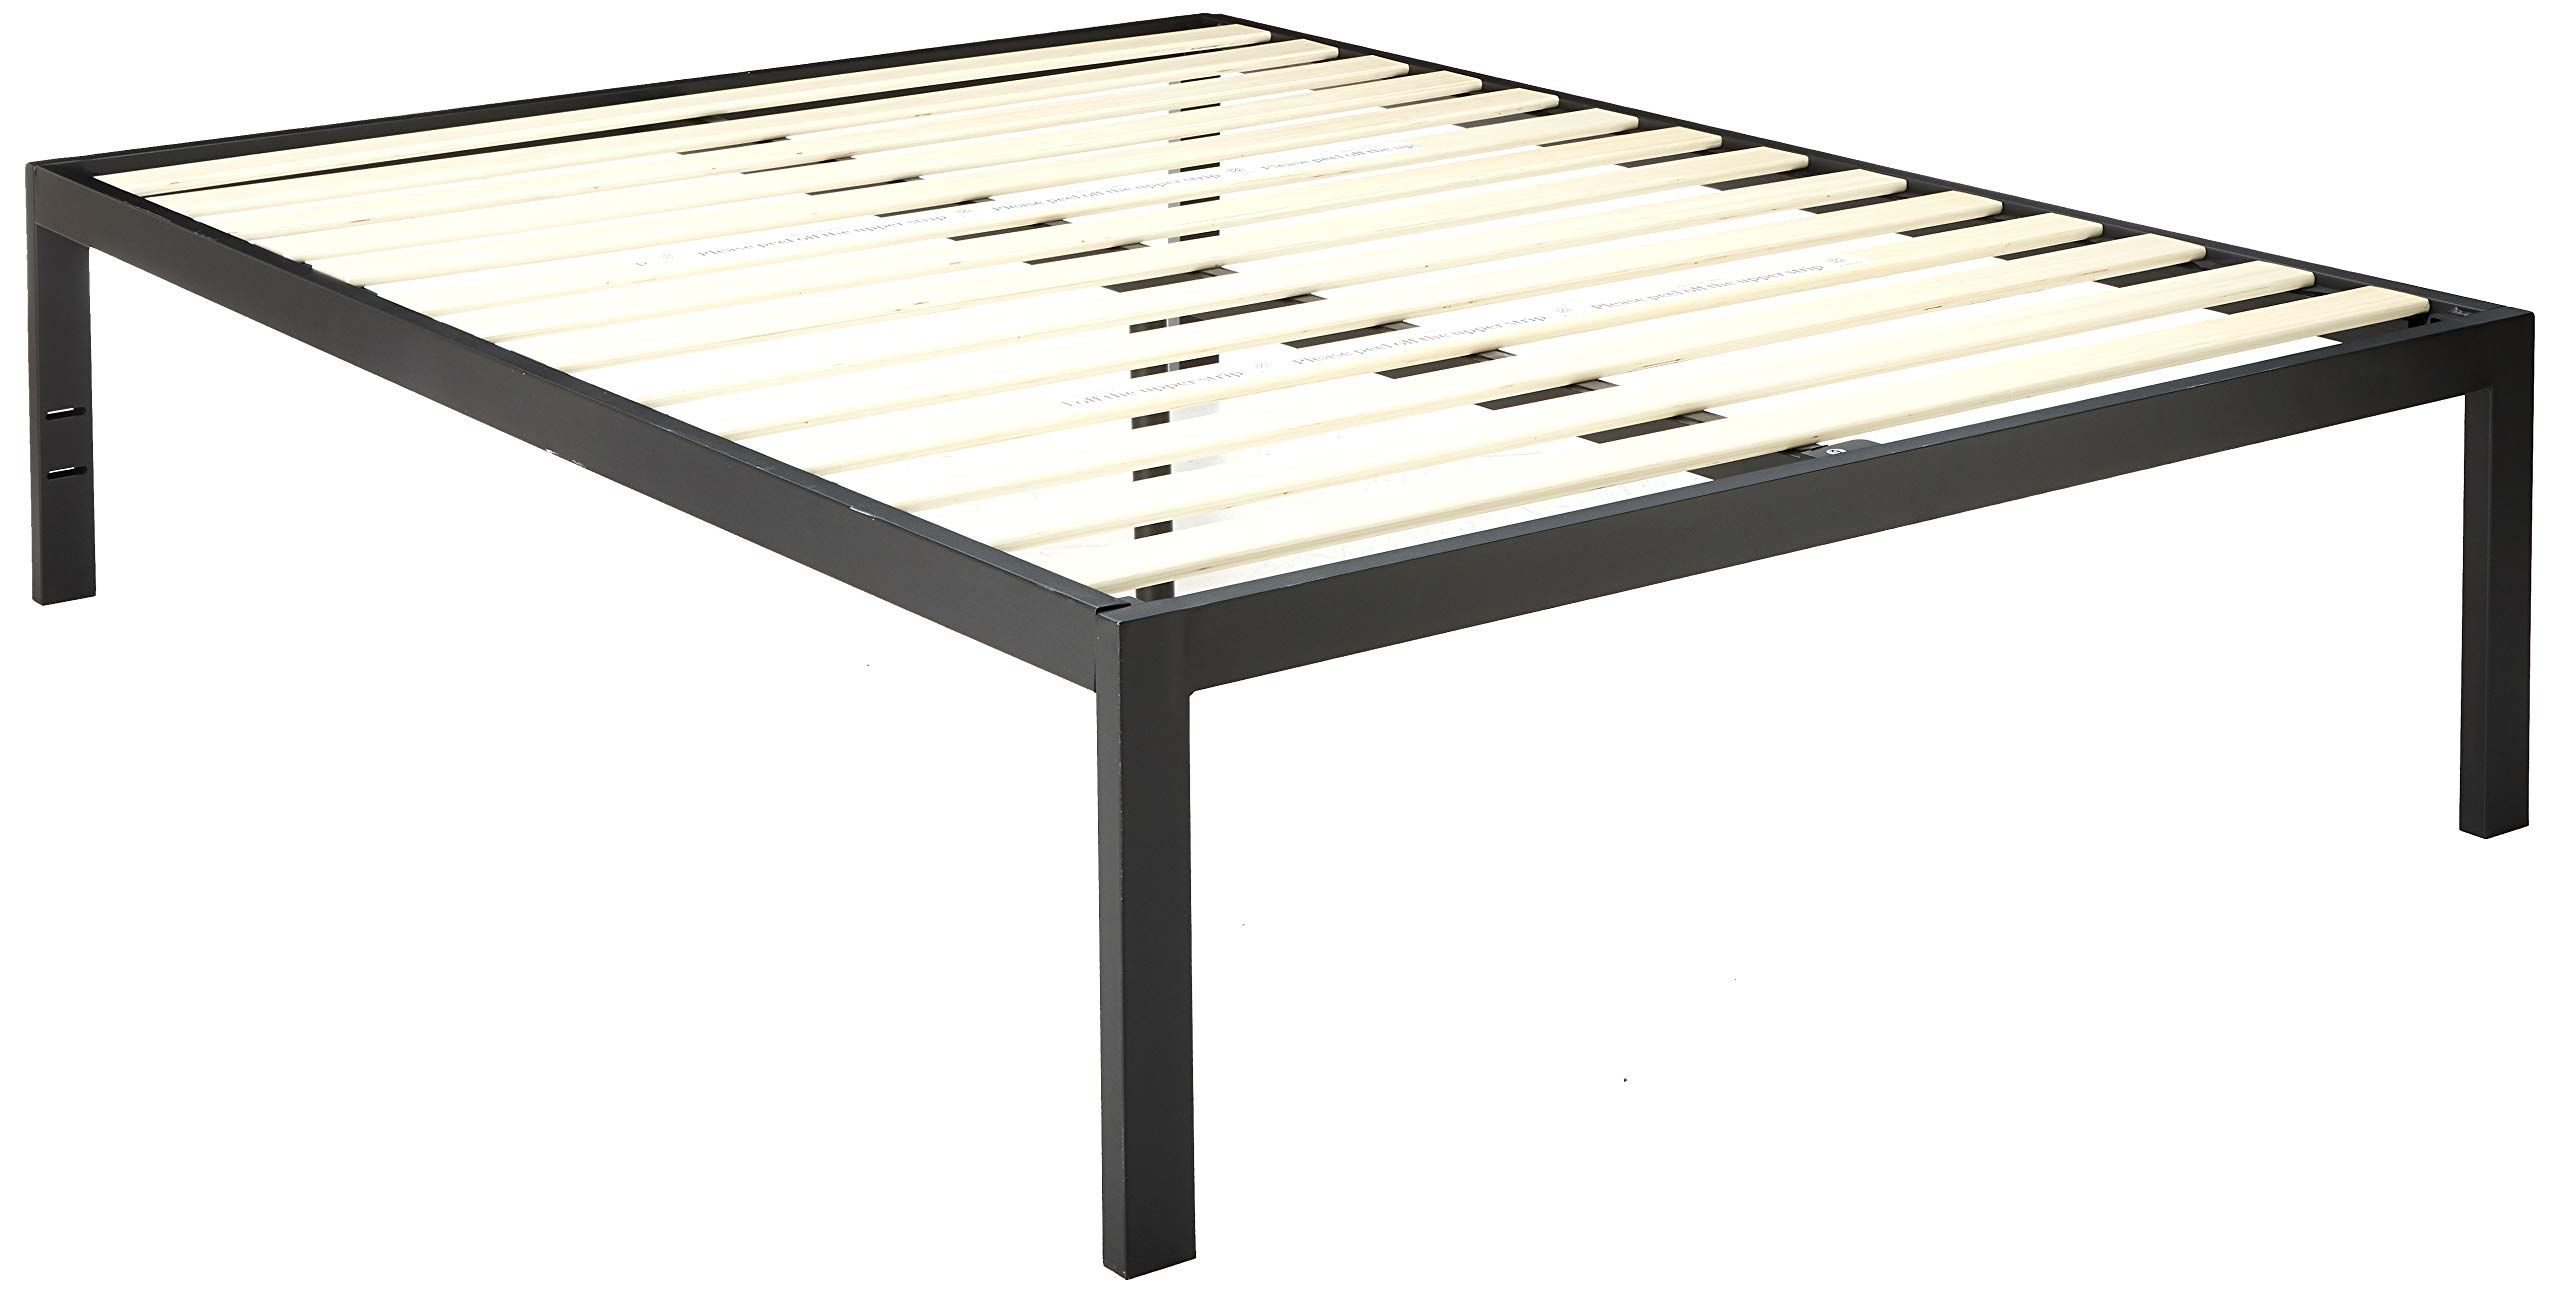 Zinus Lorrick Quick Snap TM 18 Inch Platform Bed Frame / Mattress Foundation / With Less than 3 Inch Spacing / Wooden Slat Support / No Bolts or Nuts / Easy Assembly, Queen by Zinus